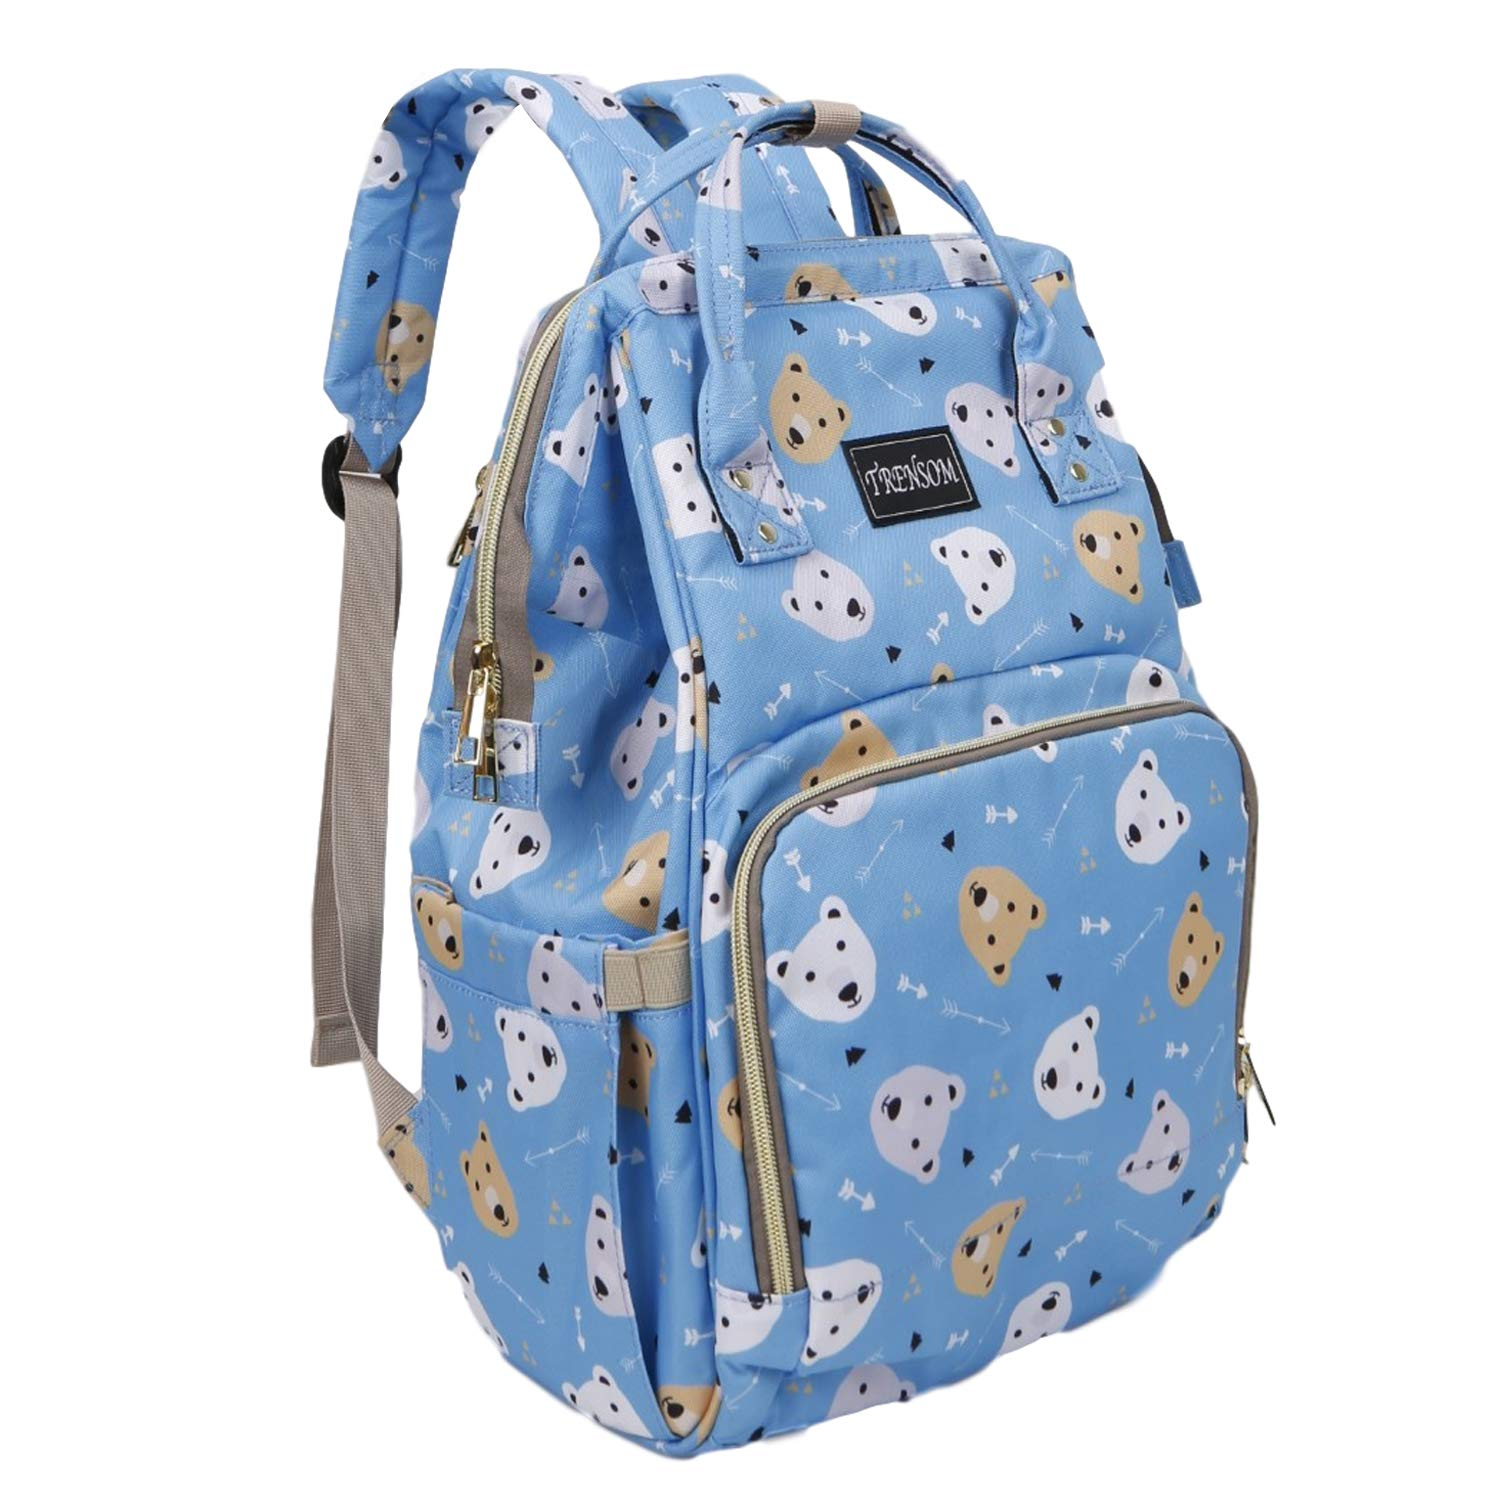 Large Capacity Baby Bear Diaper Bag Backpack, Blue Bear Head Travel Nappy Bags Maternity Nappy Baby Bags for Mom Dad Boys Girls,Diaper Bag Organizer